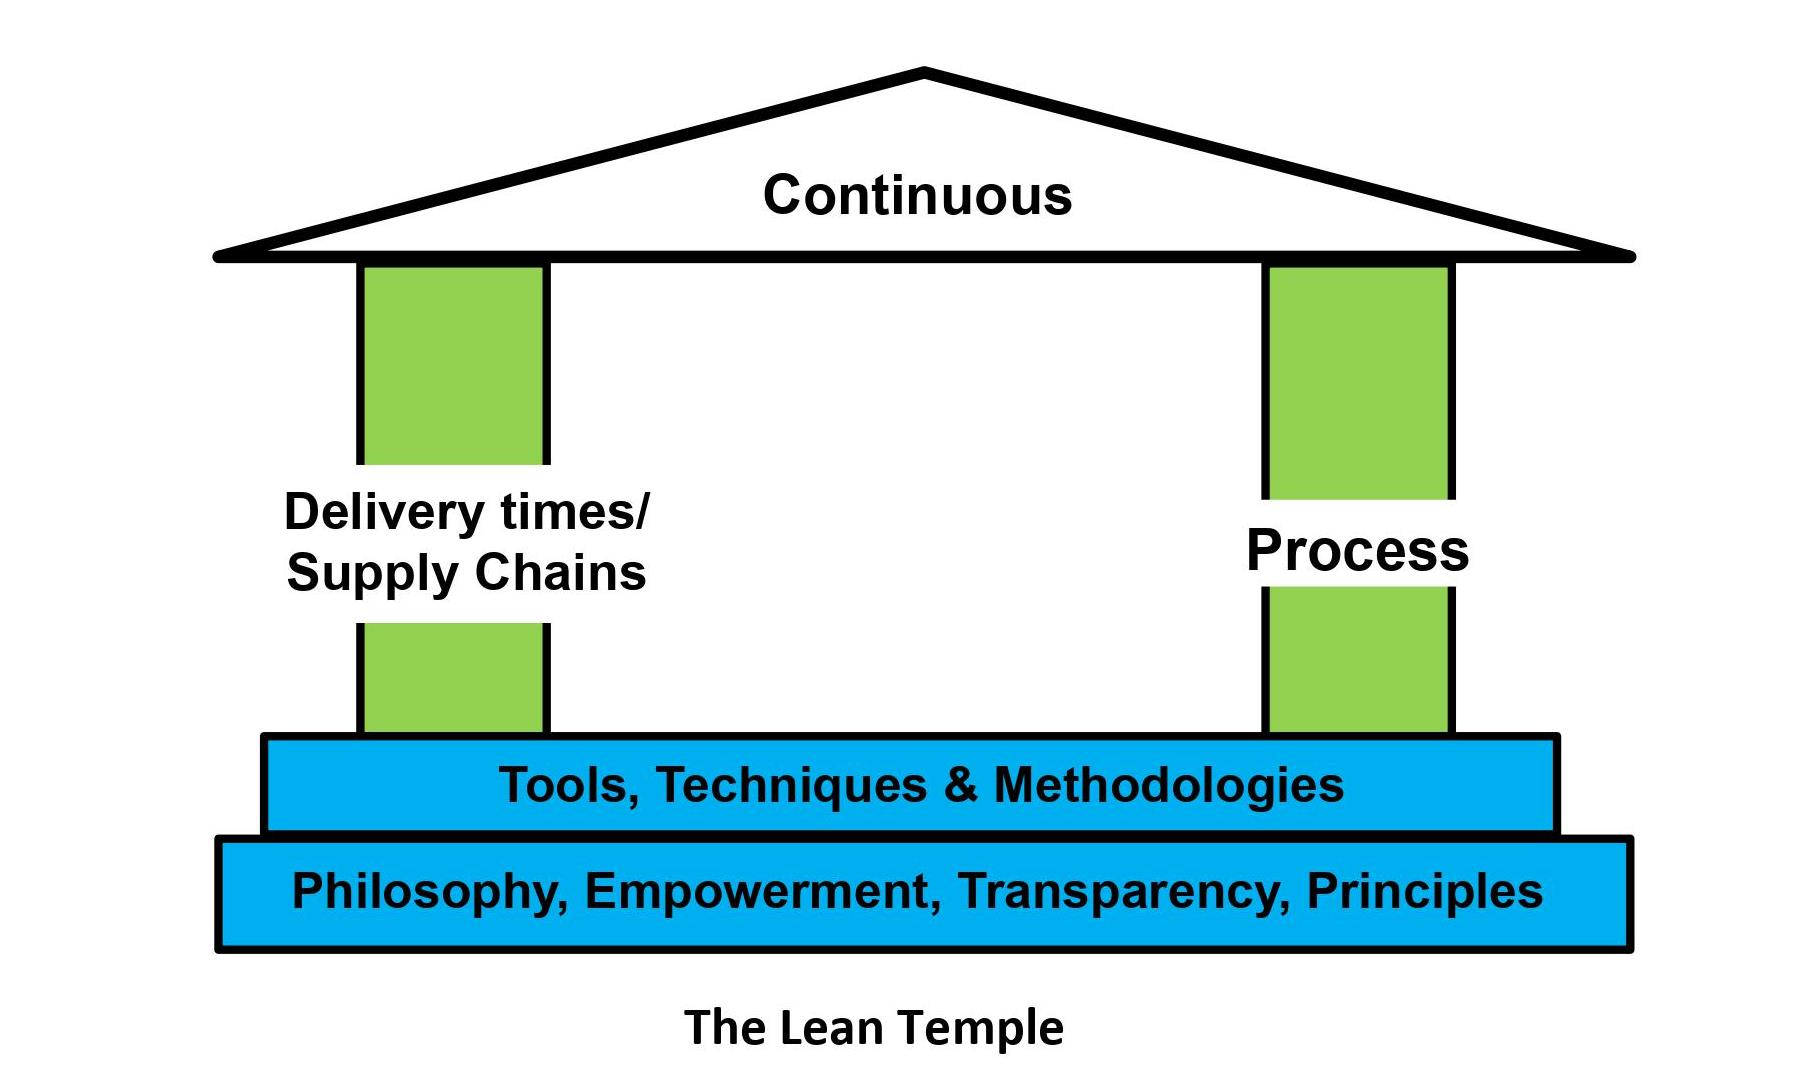 The Lean Temple